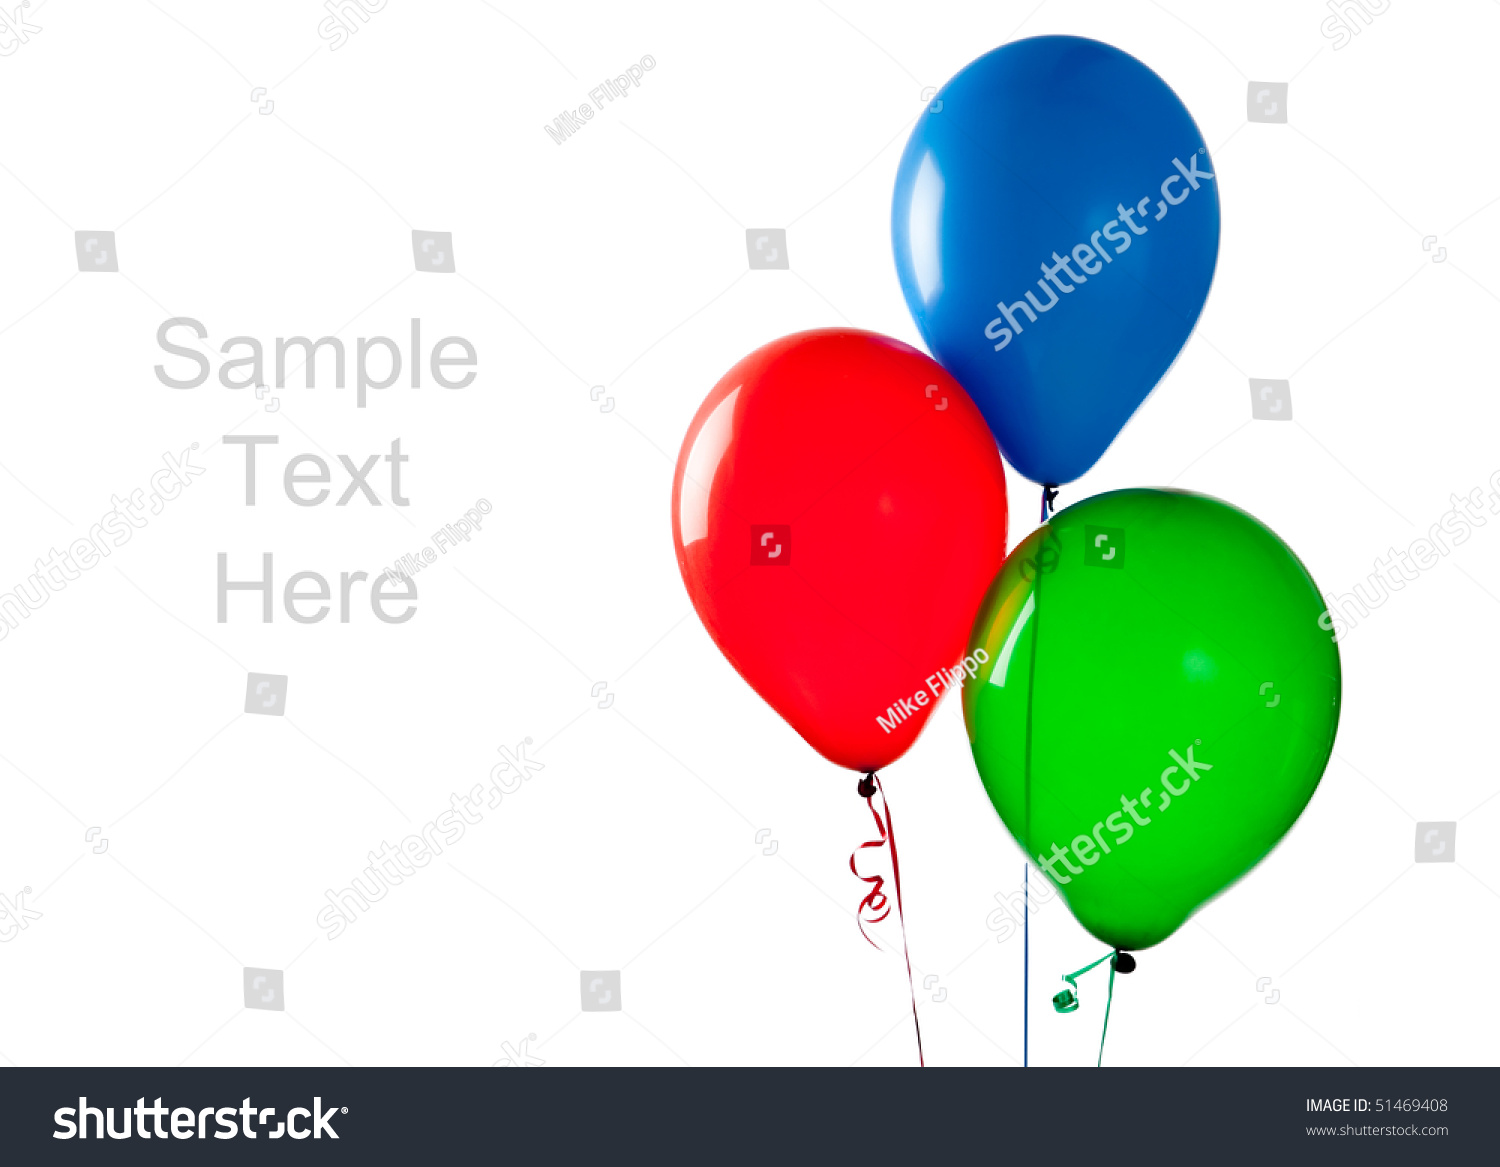 Green and blue balloons - Red Blue And Green Balloons On A White Background With Copy Space